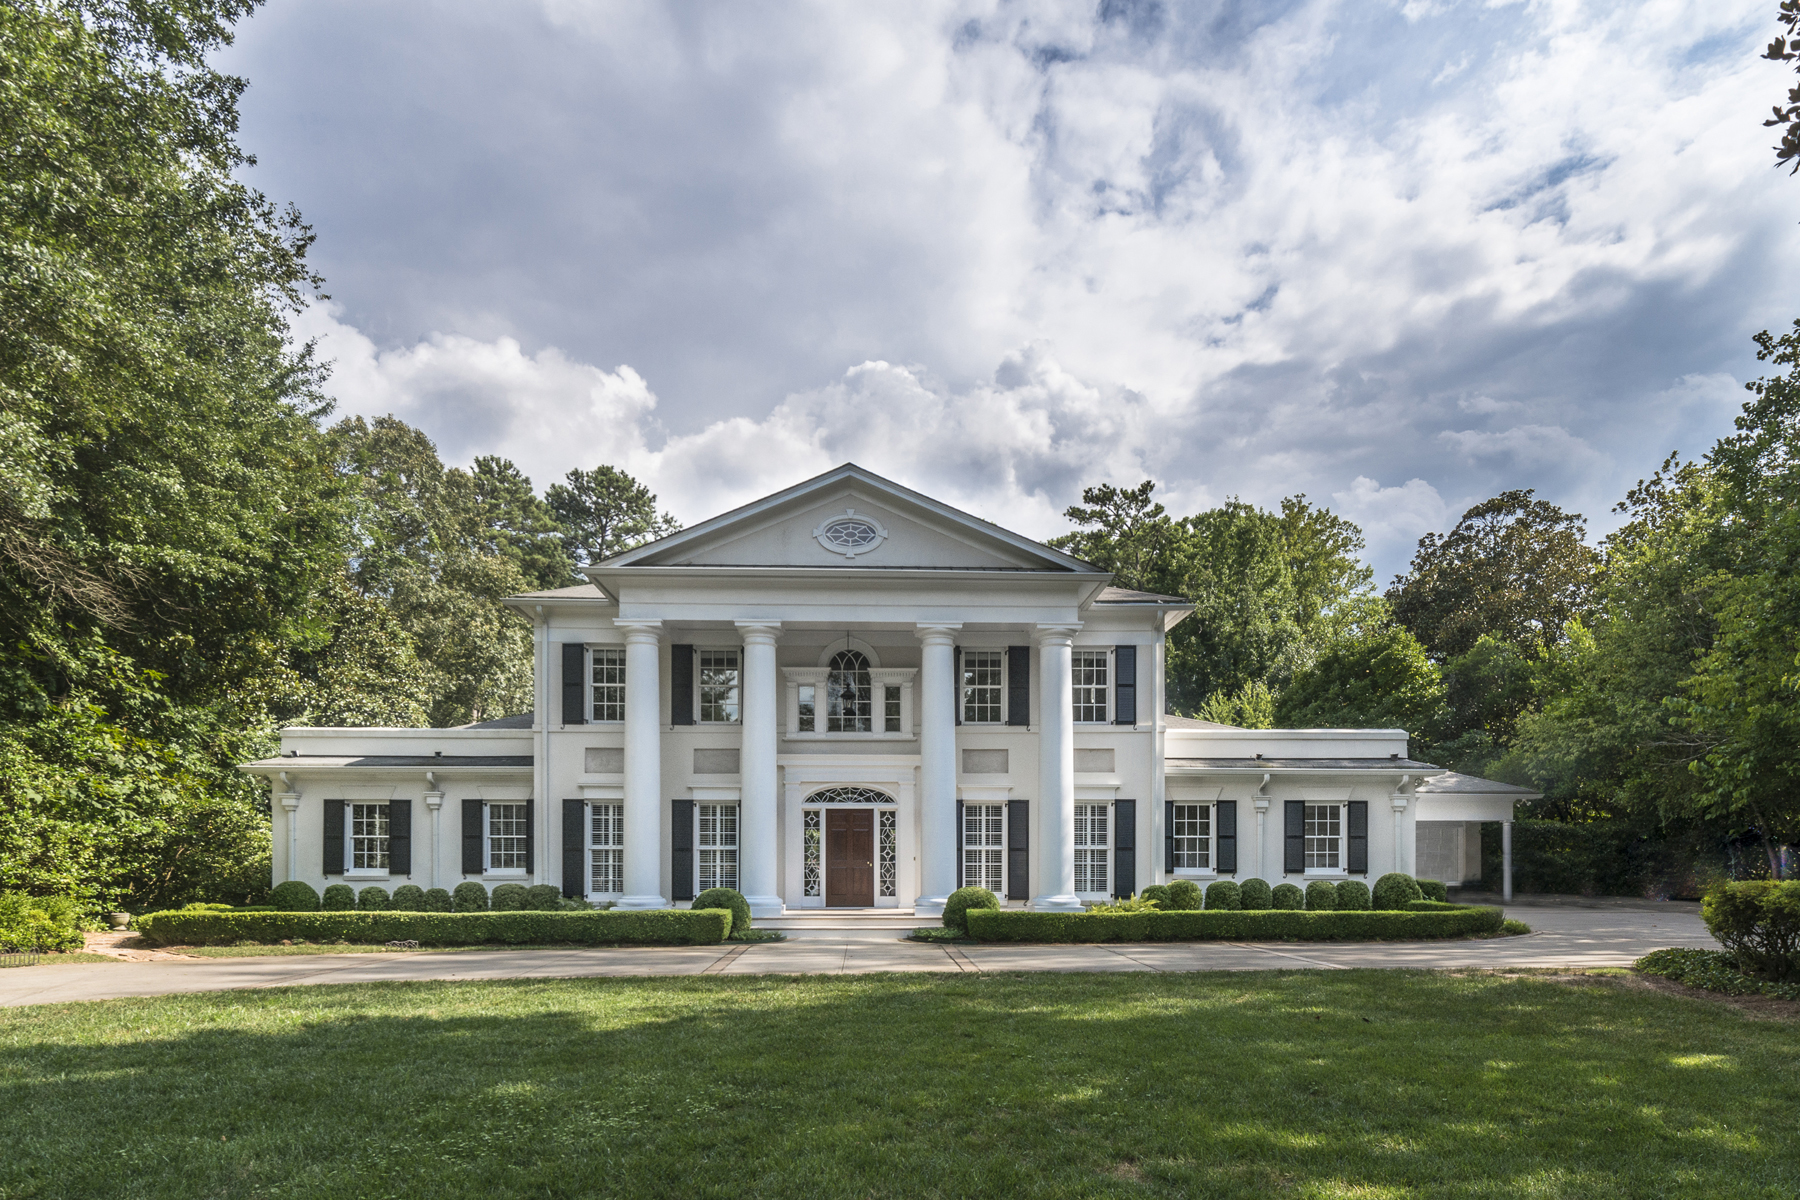 Частный односемейный дом для того Продажа на Elegant Light Filled Bill Baker Renovation In Buckhead 330 Blackland Road NW Tuxedo Park, Atlanta, Джорджия 30342 Соединенные Штаты